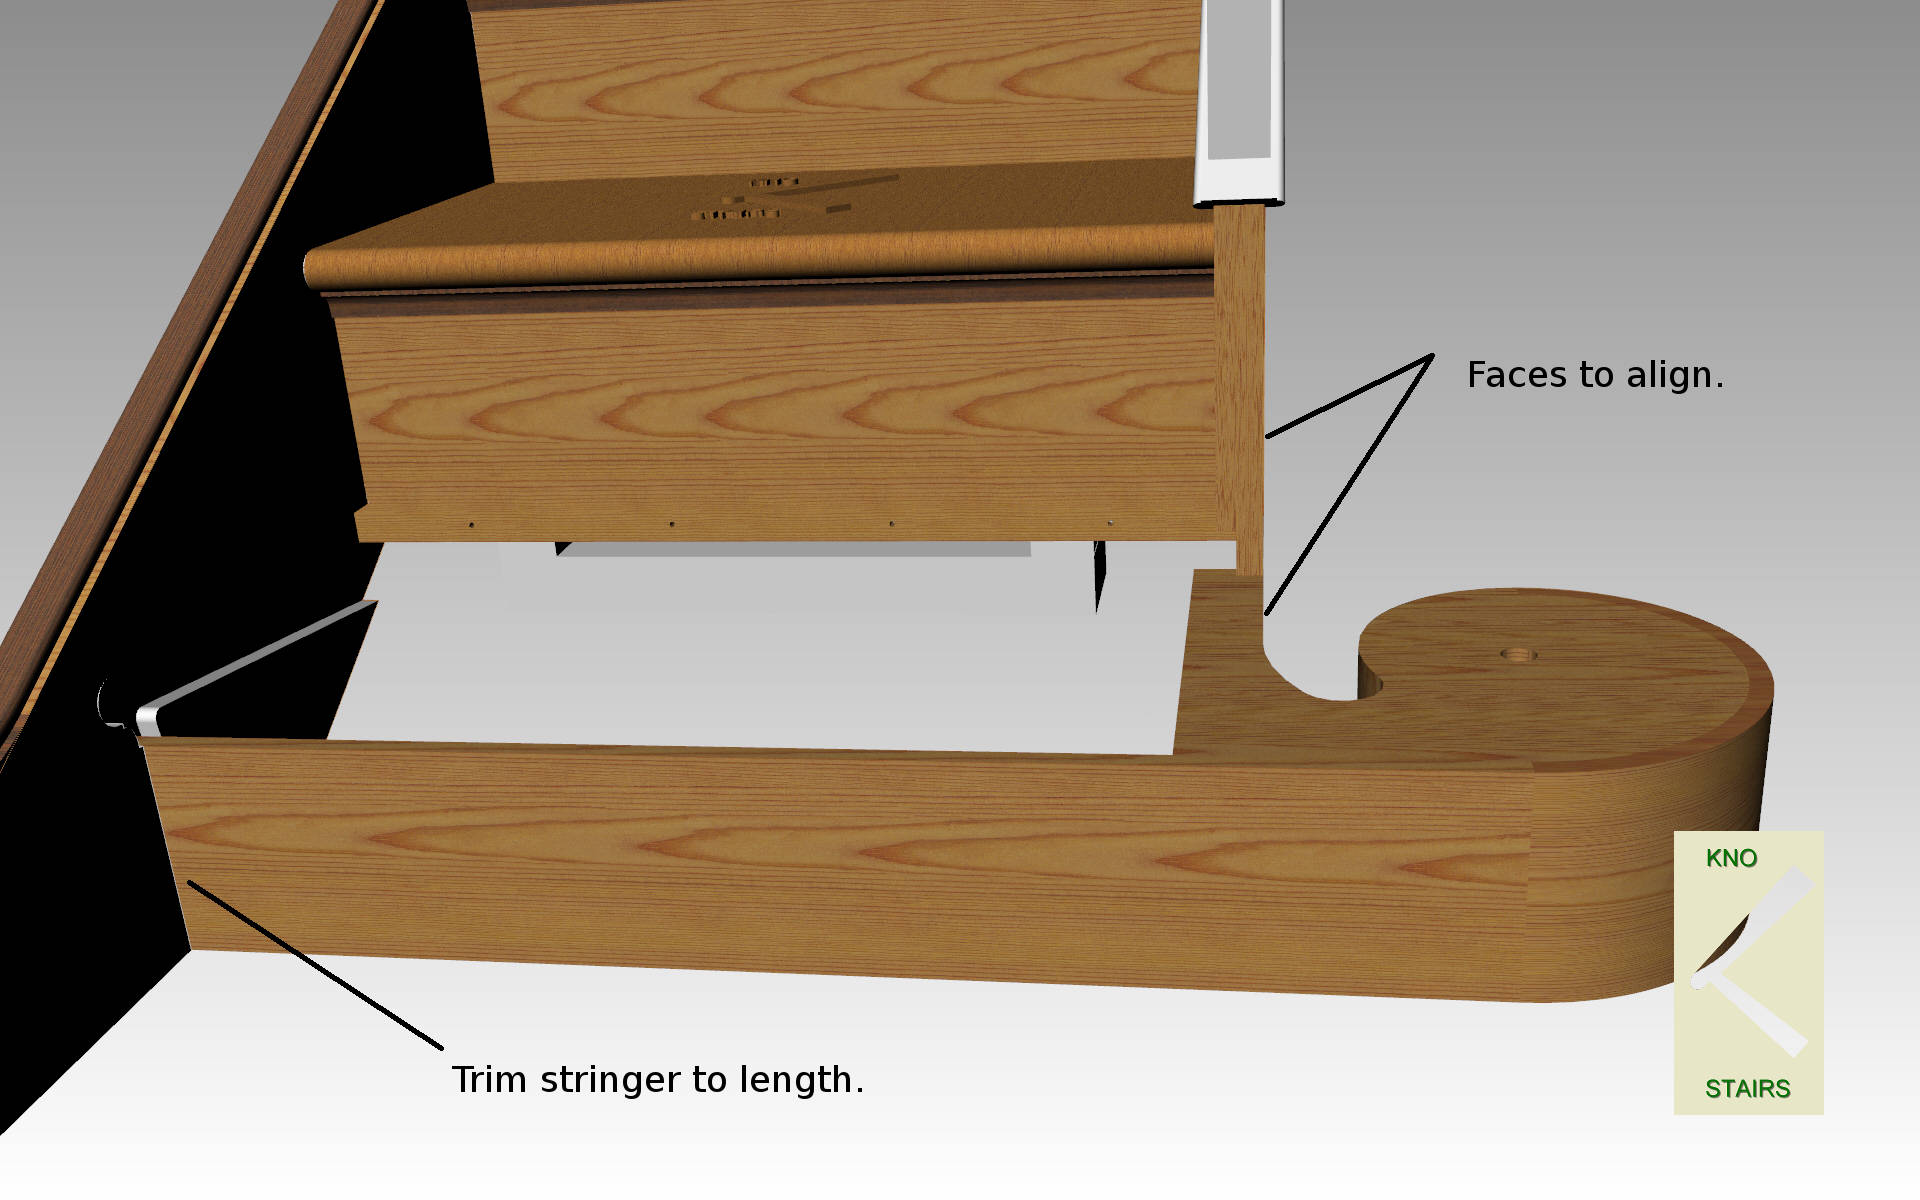 Trim riser to length.